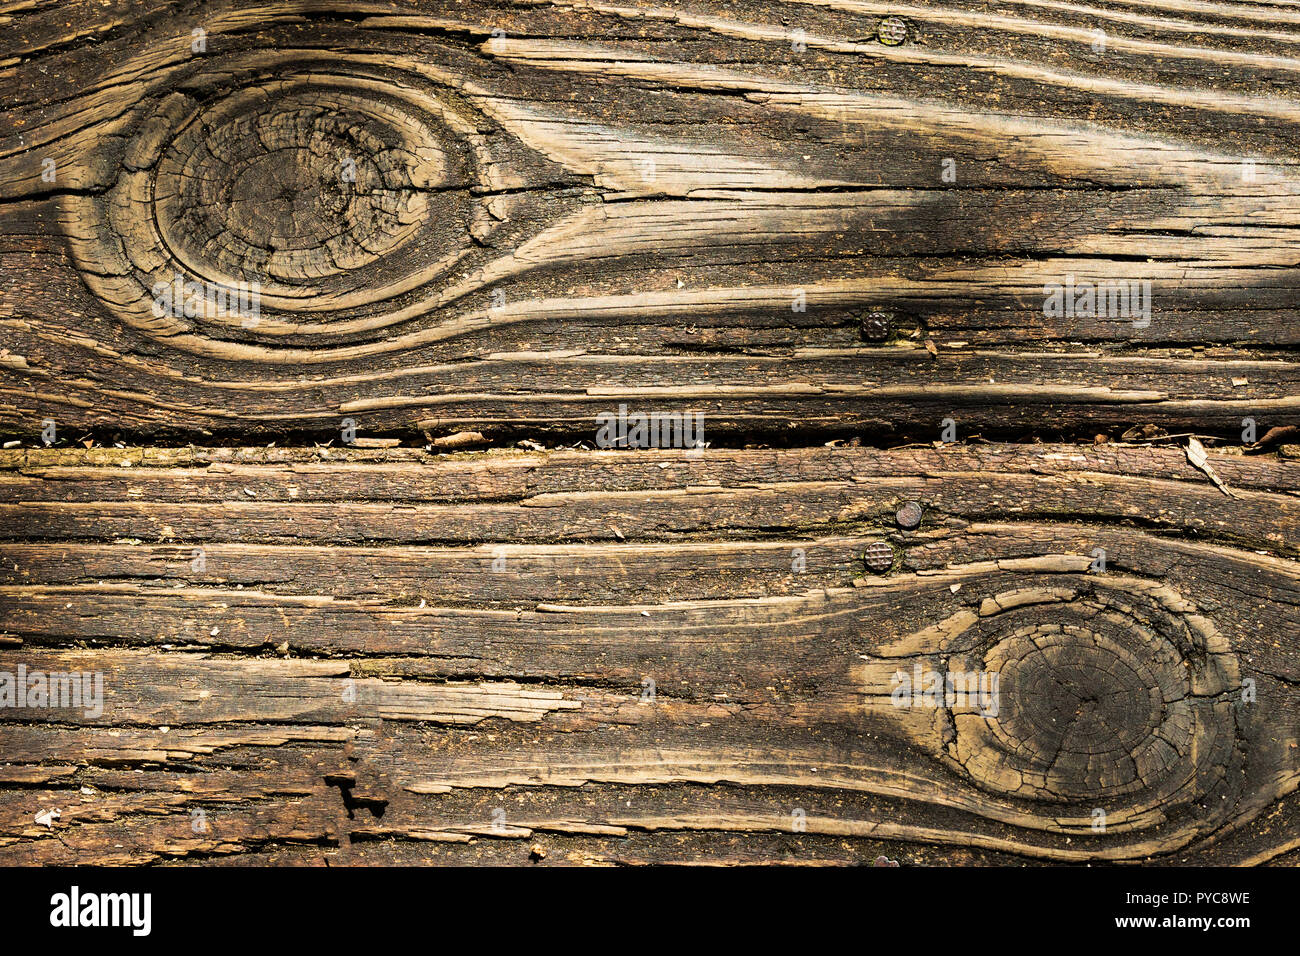 Two planks of a walkway, worn and rough, with large knots and nail heads exposed - Stock Image